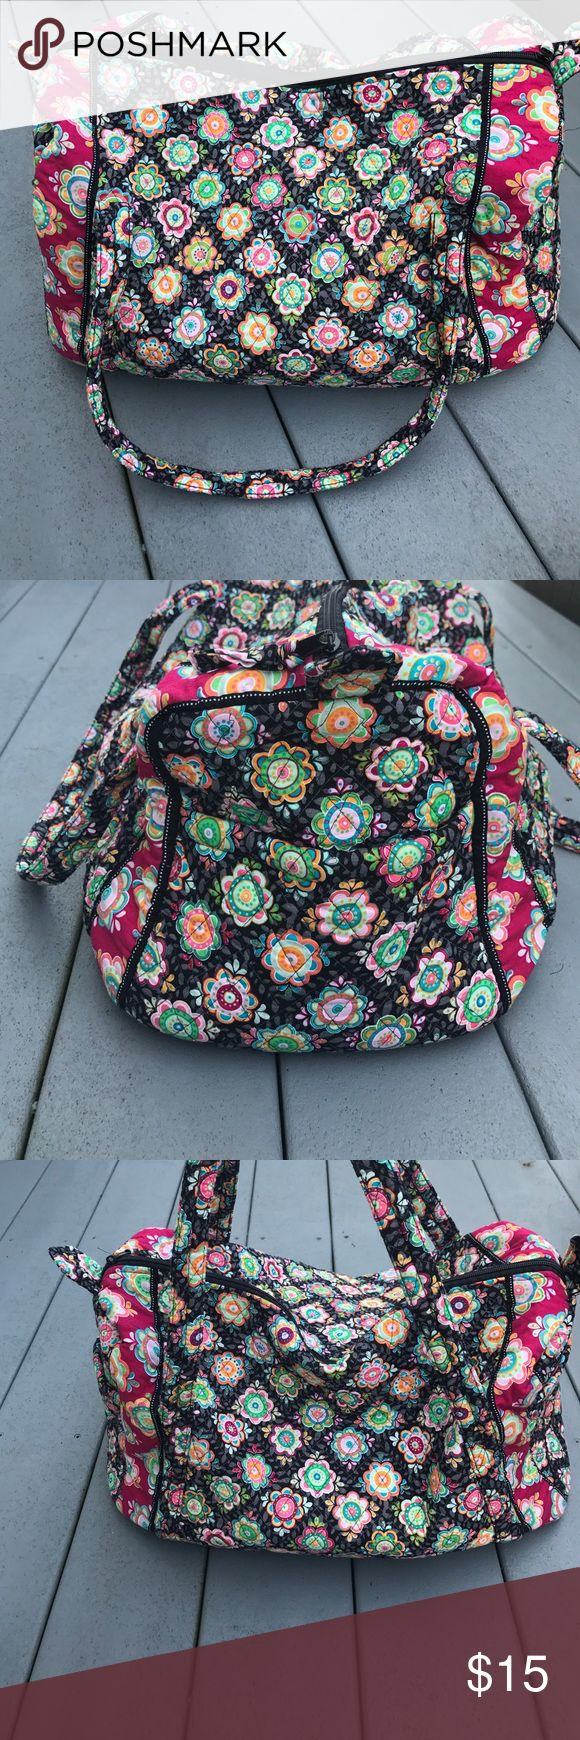 Vera Bradley Inspired Weekend Bag Excellent condition, Vera Bradley inspired weekender bag! Washable & comes from a smoke free home! Same or next day shipping on all purchases!! ➡️Make an offer! Bags Travel Bags